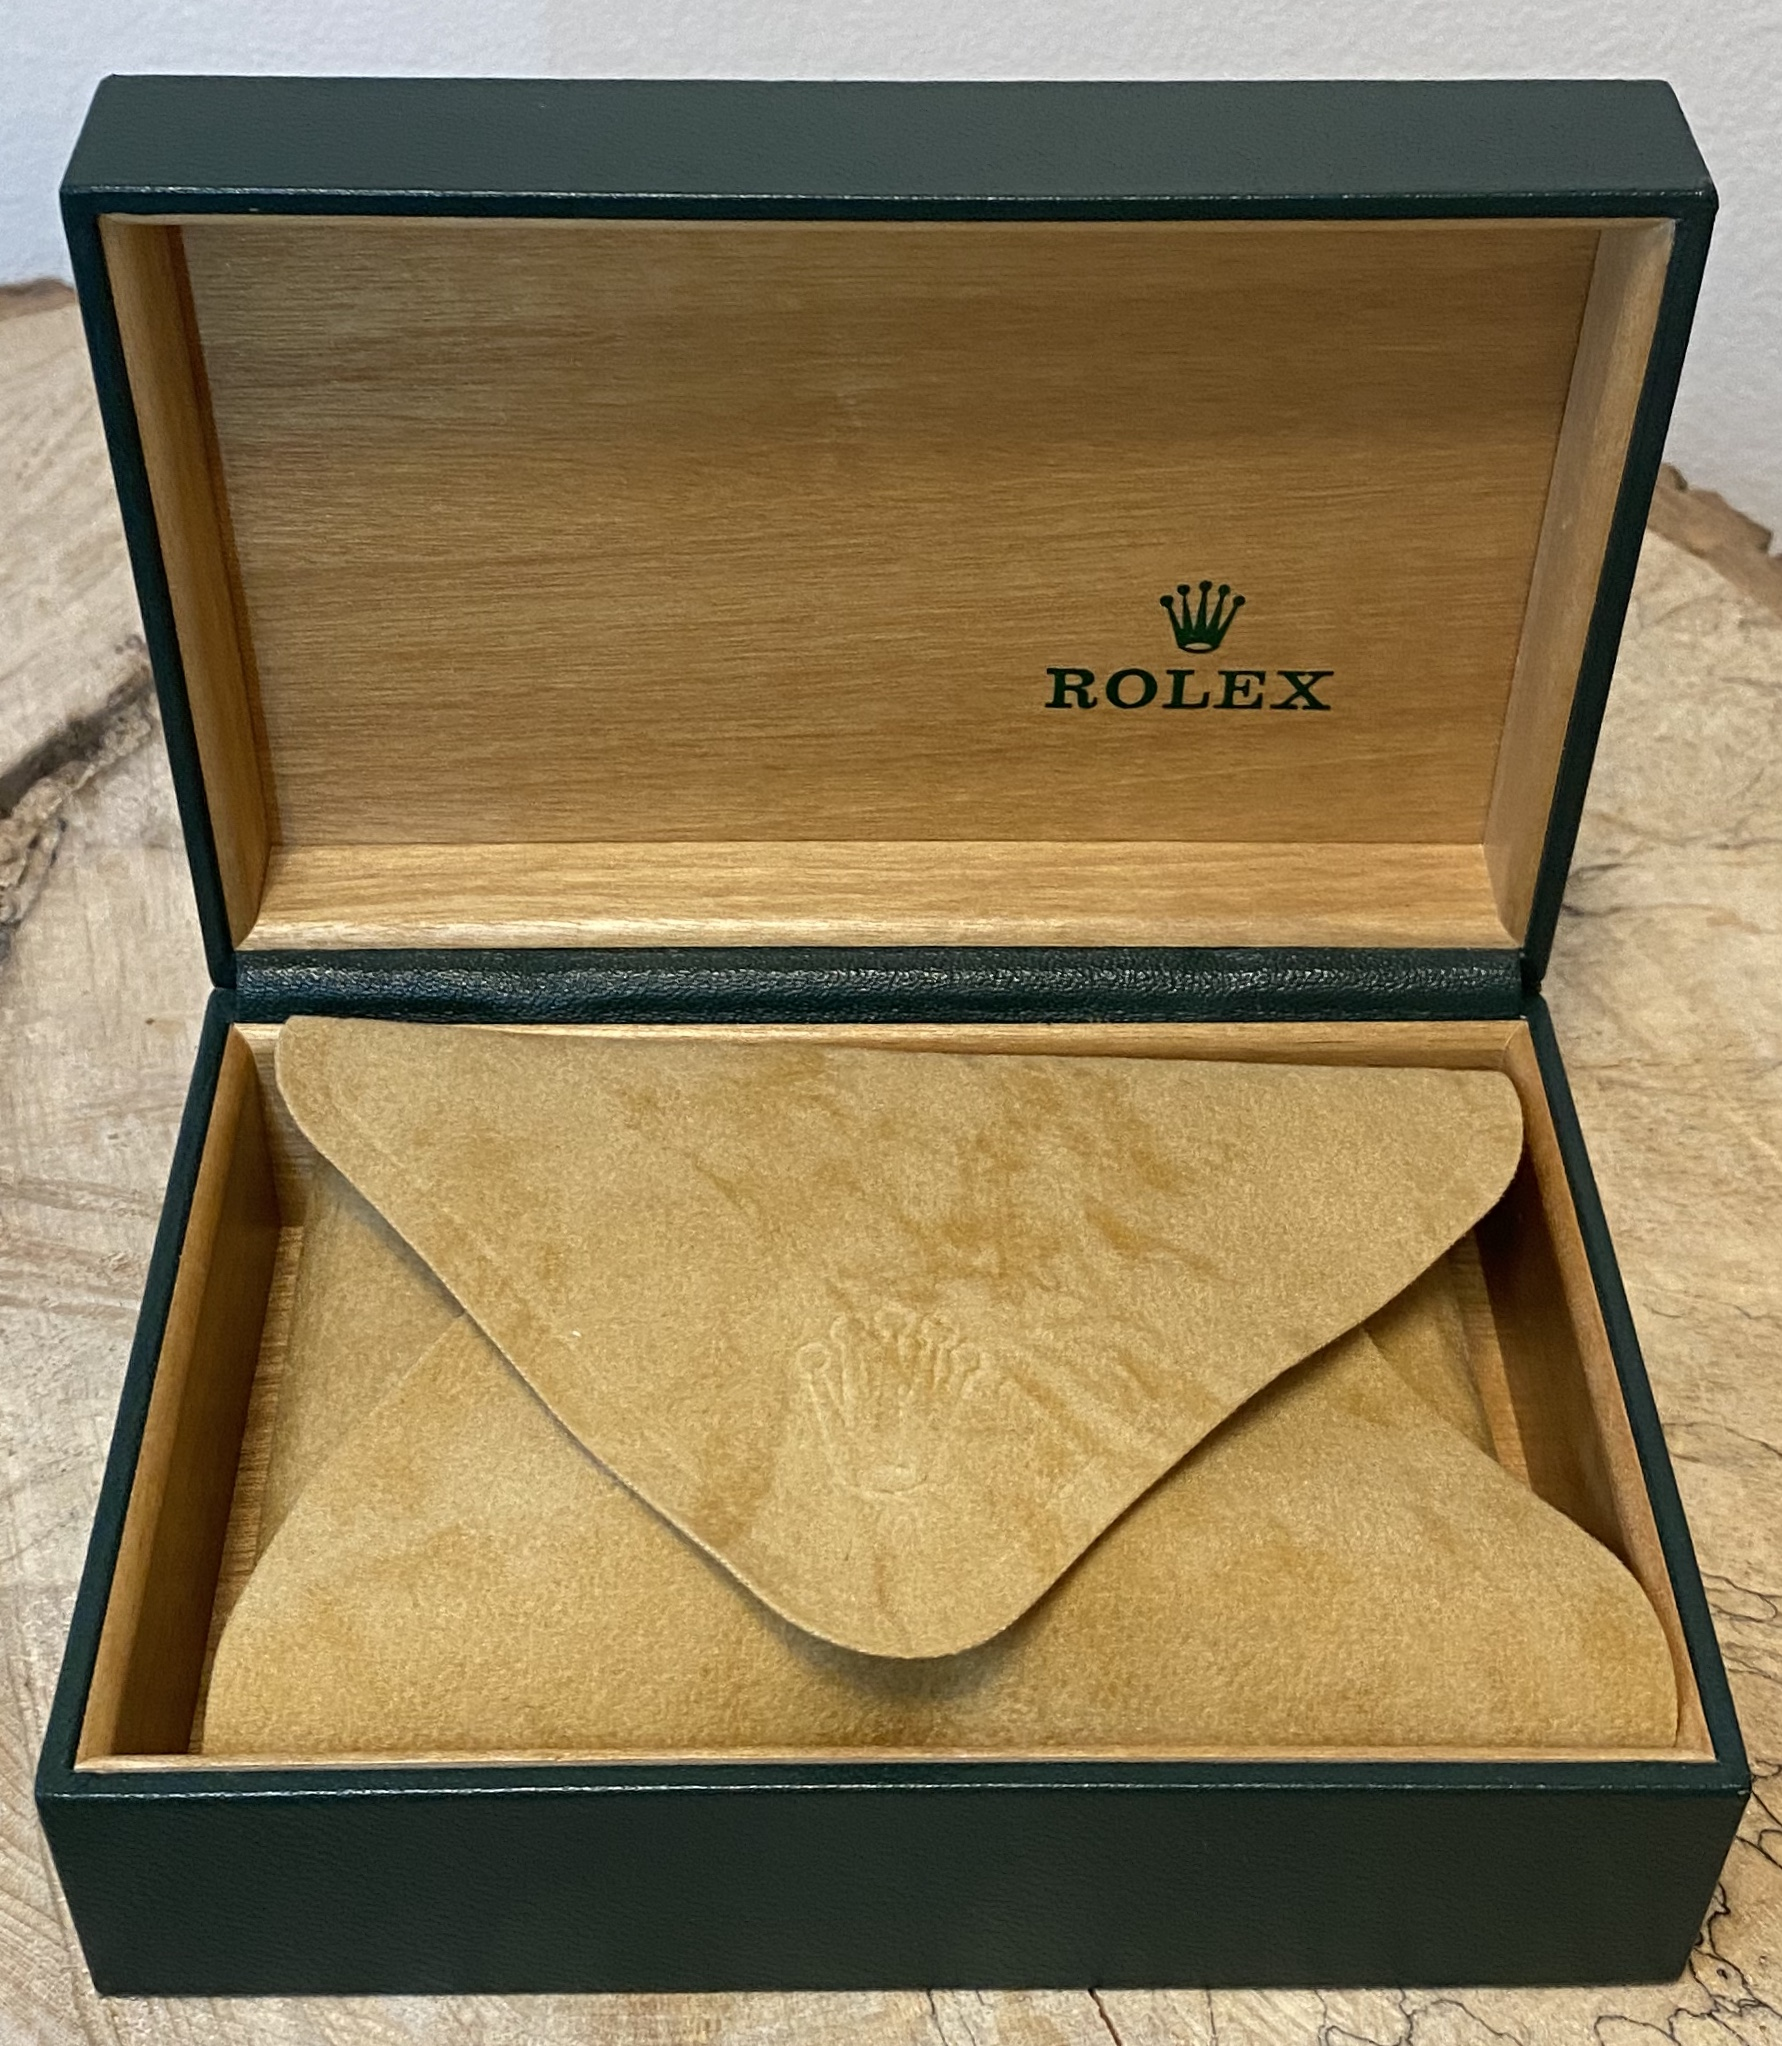 Lot 57 - Ladies Rolex Datejust 69173 18k & Stainless Steel *2 Year Guarantee*